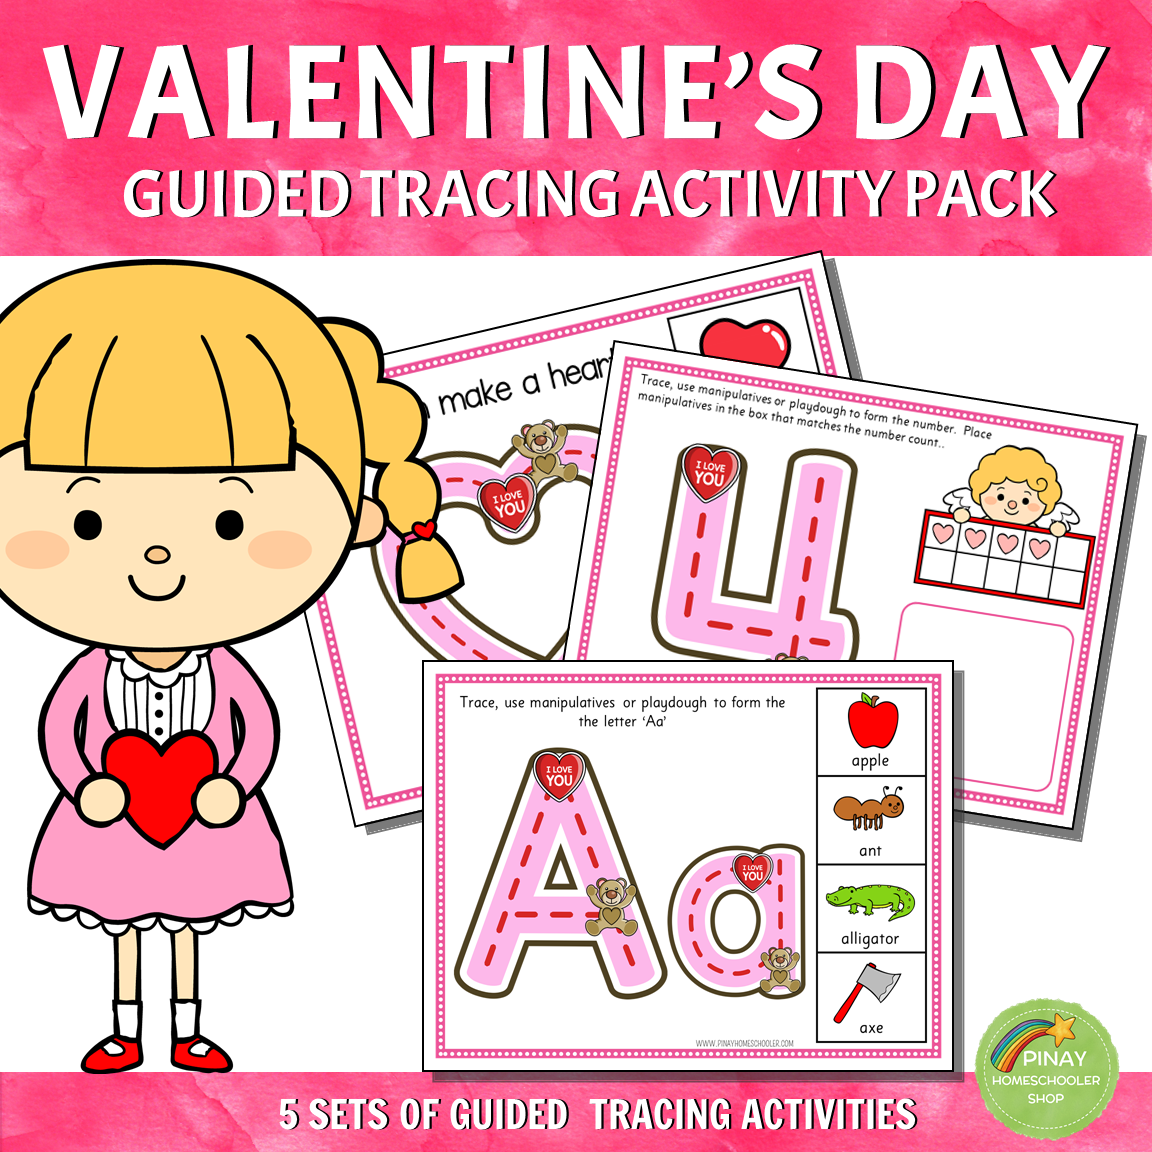 Valentine's Day Guided Tracing Activity Pack